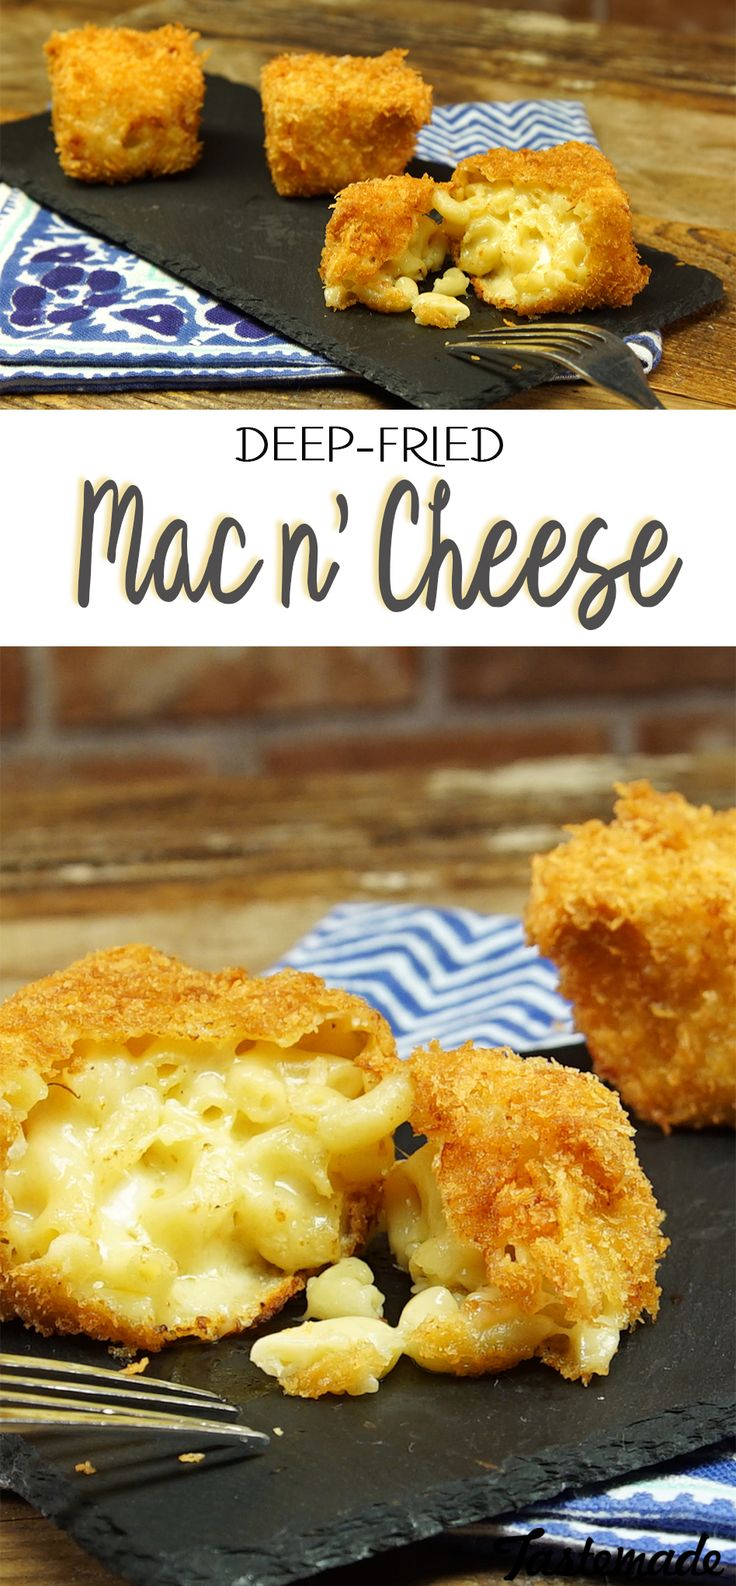 Can frying an already perfect food like mac 'n' cheese make it perfect-er?